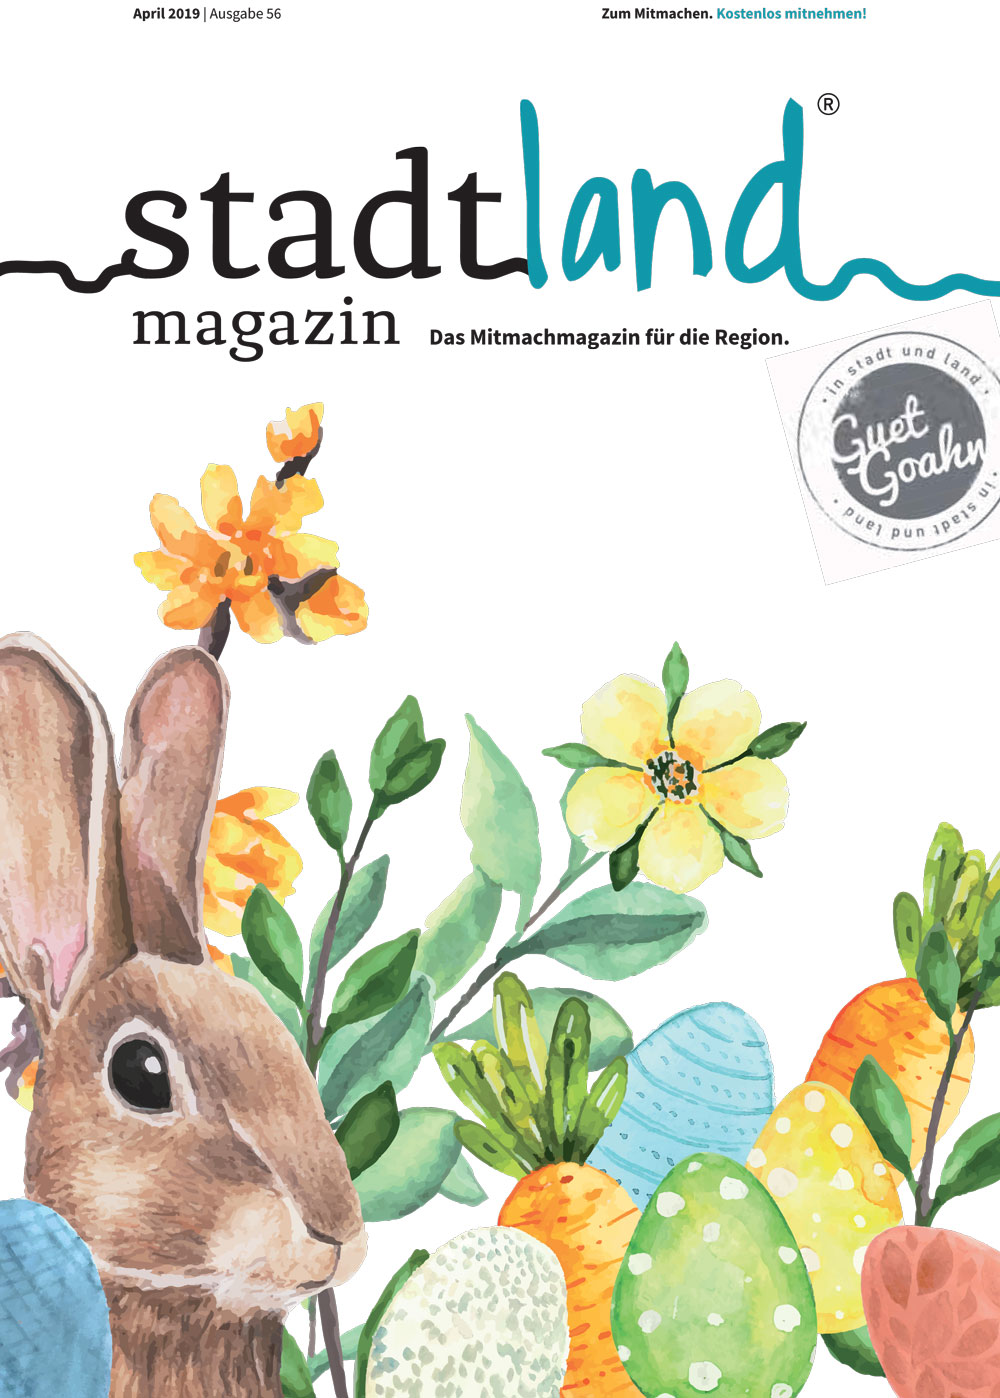 stadtland magazin April 2019